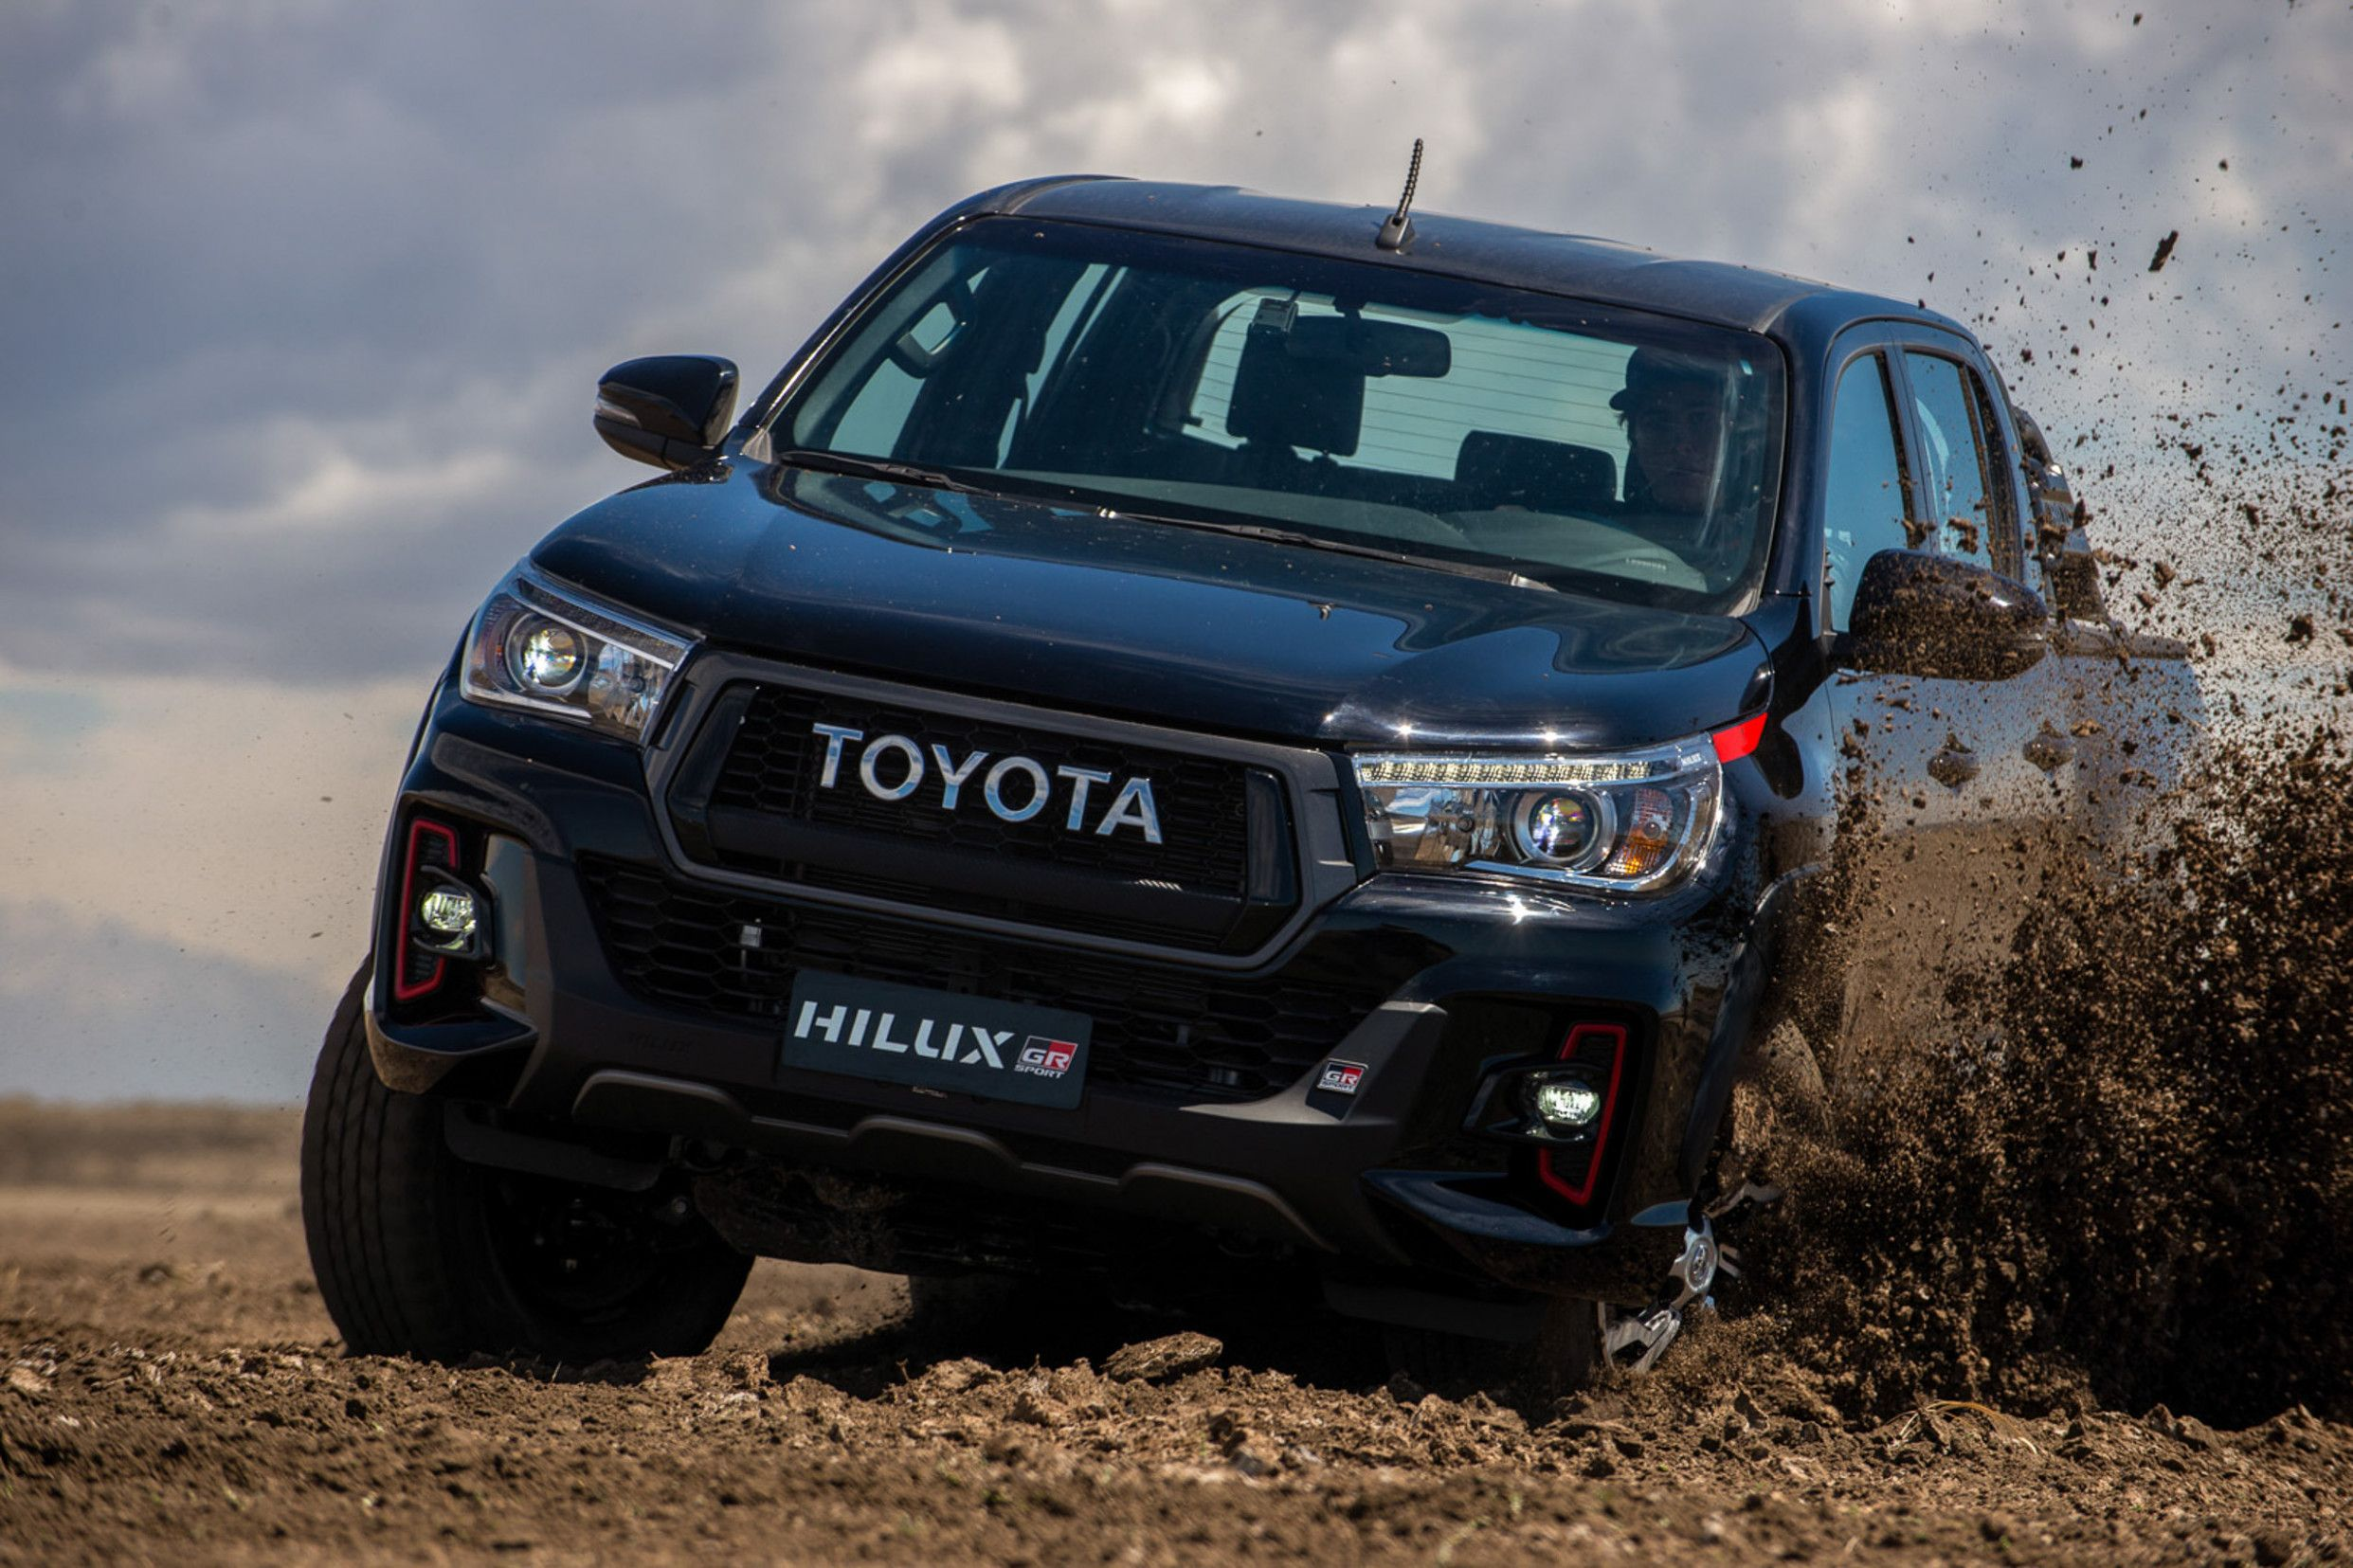 6 Wallpaper Toyota Hilux 2020 Price Philippines In 2020 Toyota Hilux Toyota Toyota Motors